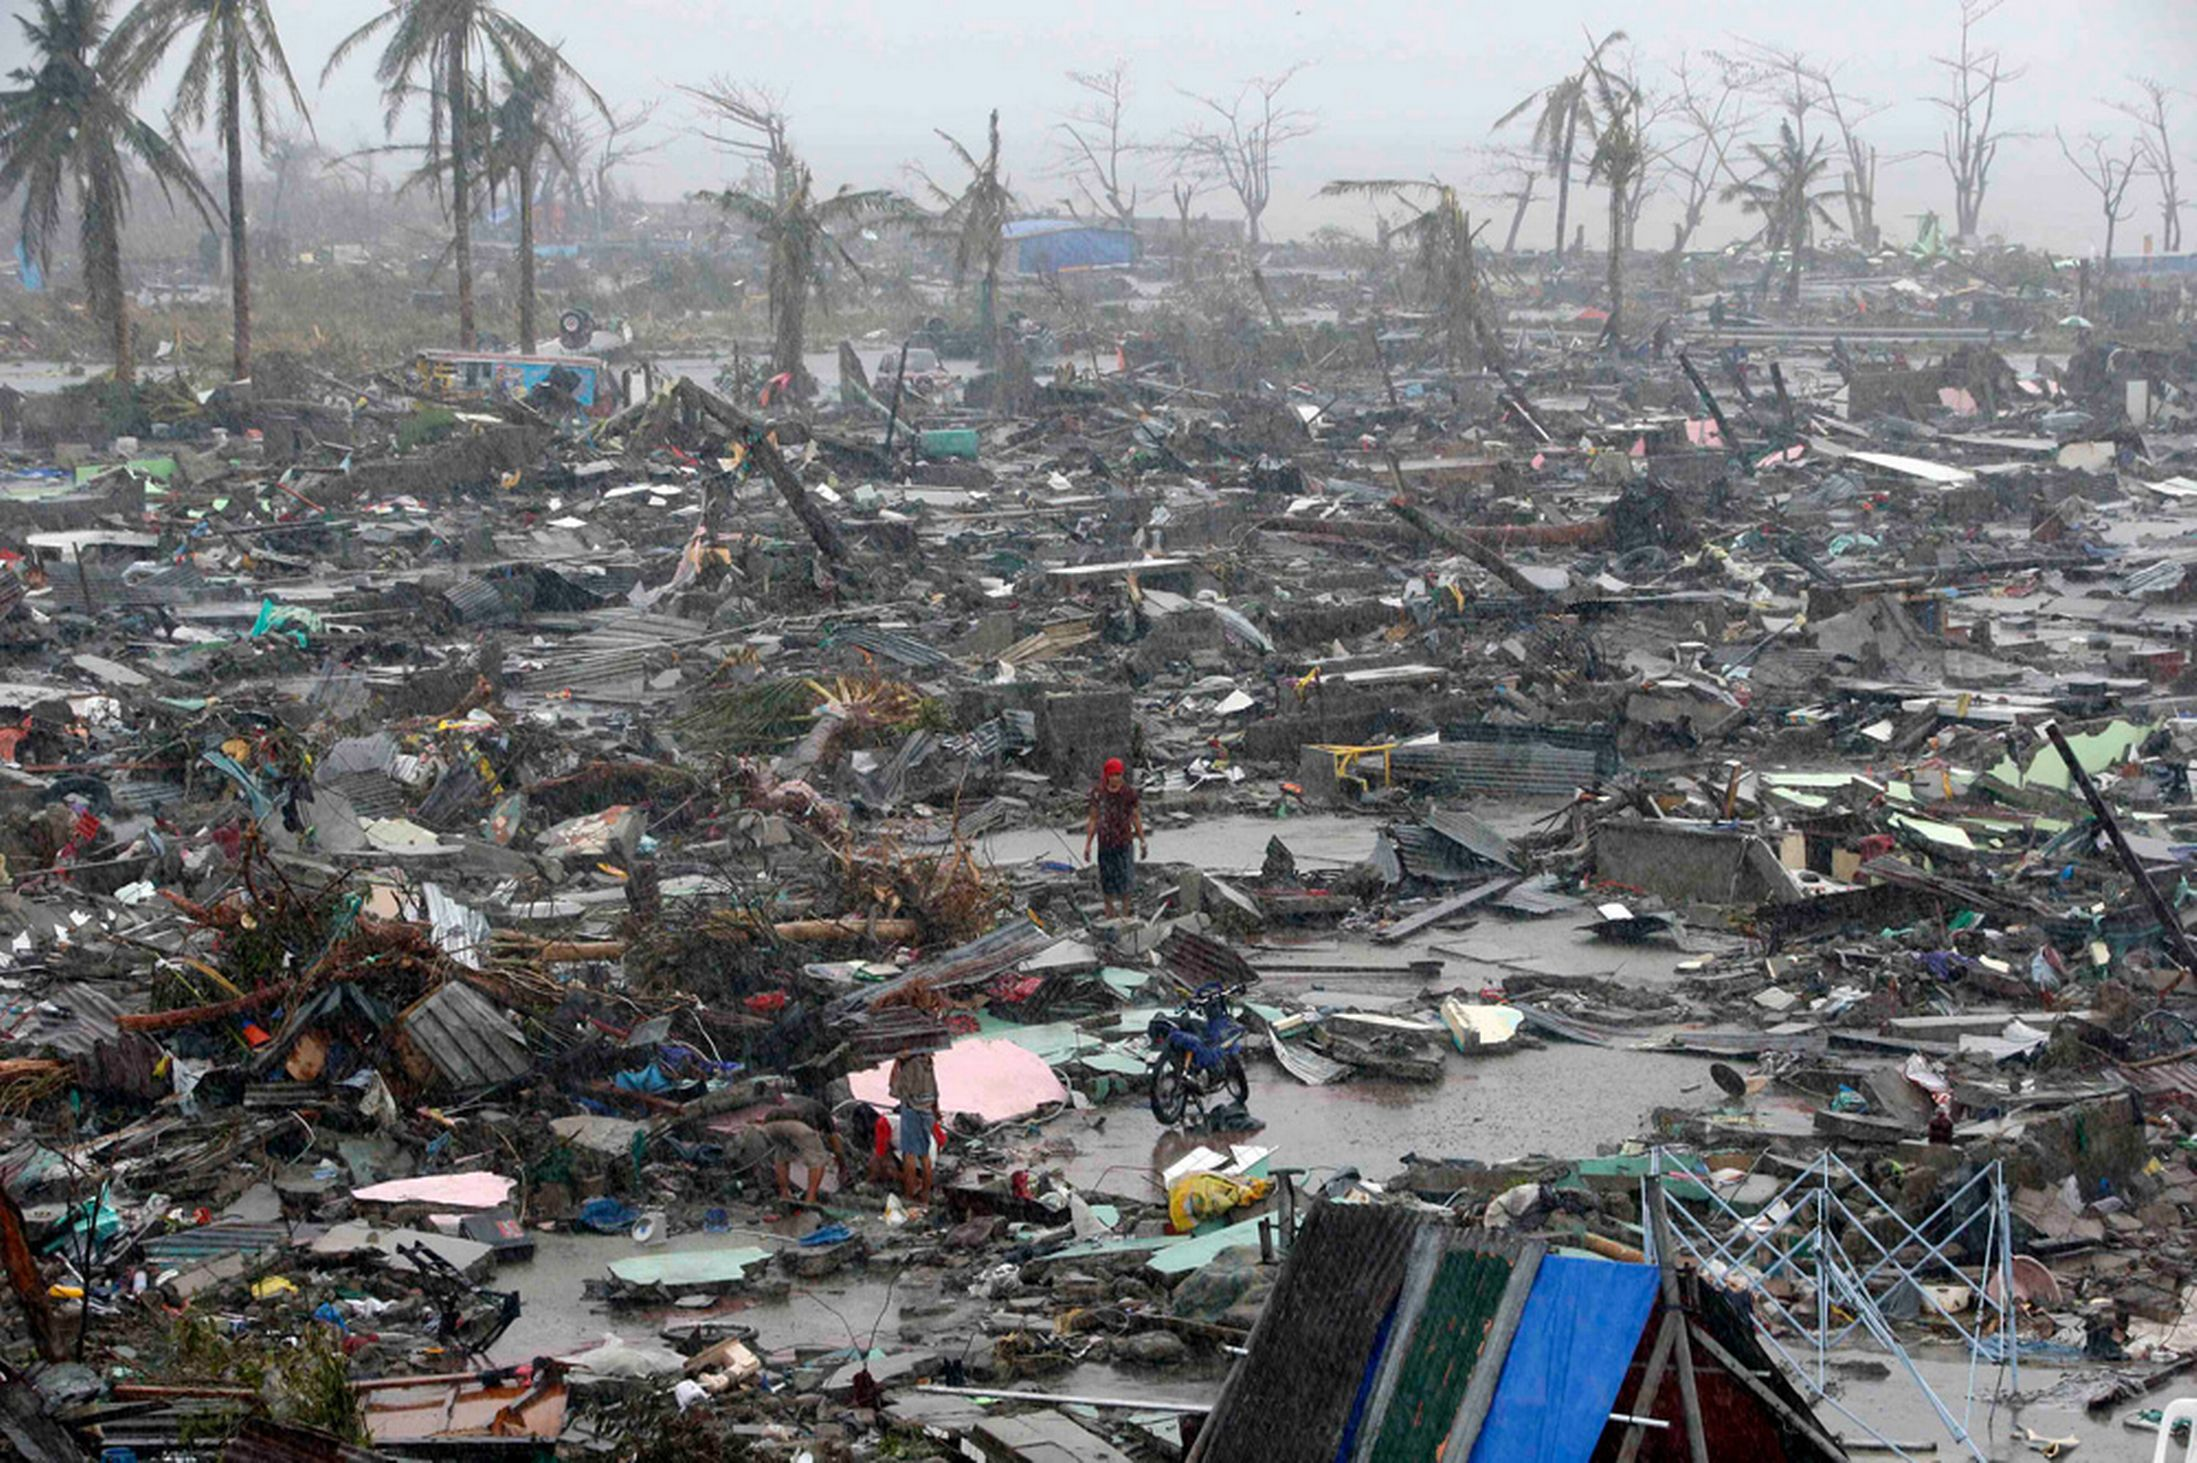 The aftermath of Typhoon Haiyan whch devastated the Philippines